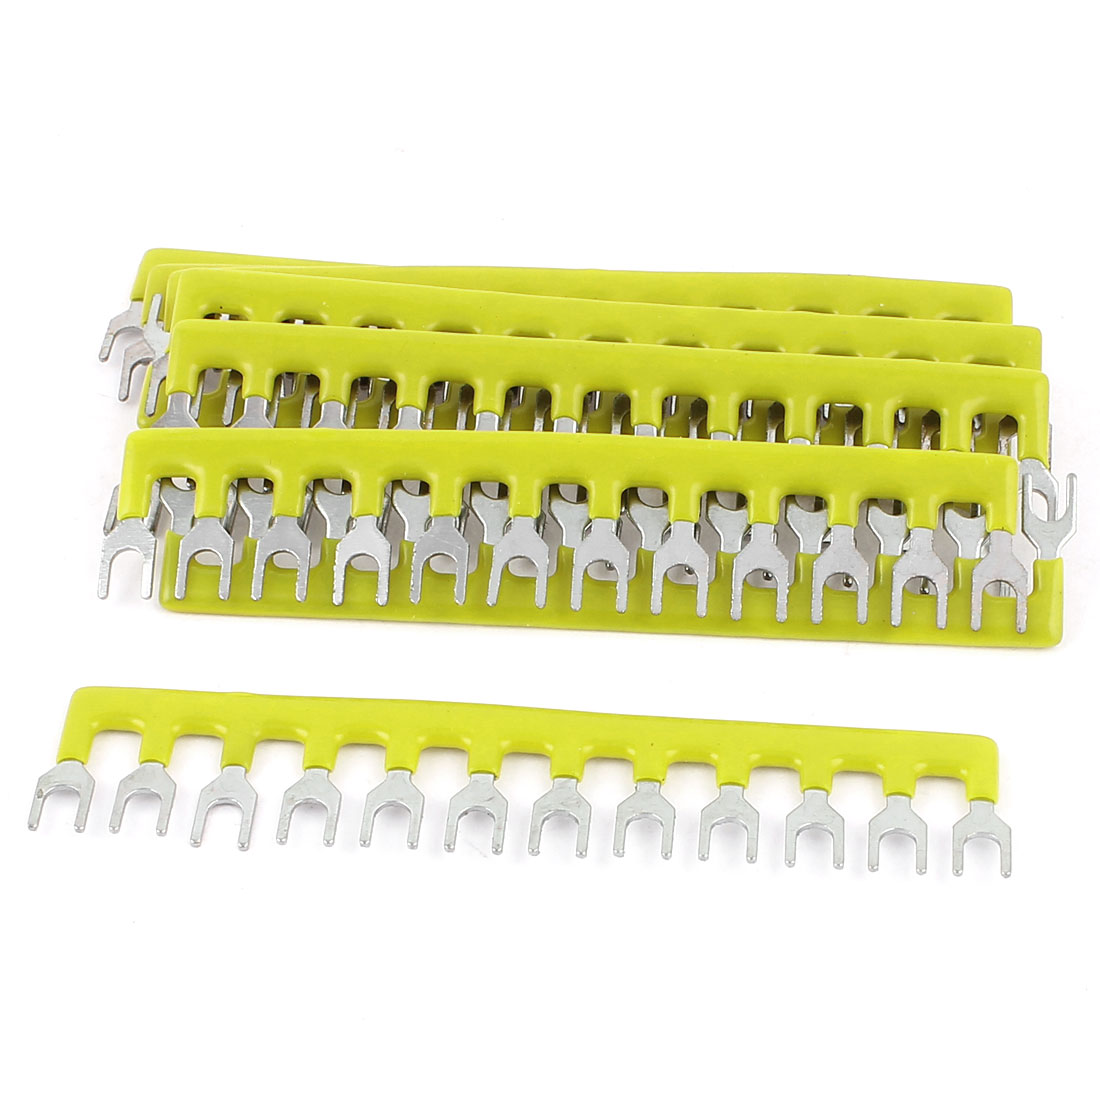 10 Pcs 400V 10A 12 Positions Pre Insulated Fork Type Barrier Terminal Connector Strip